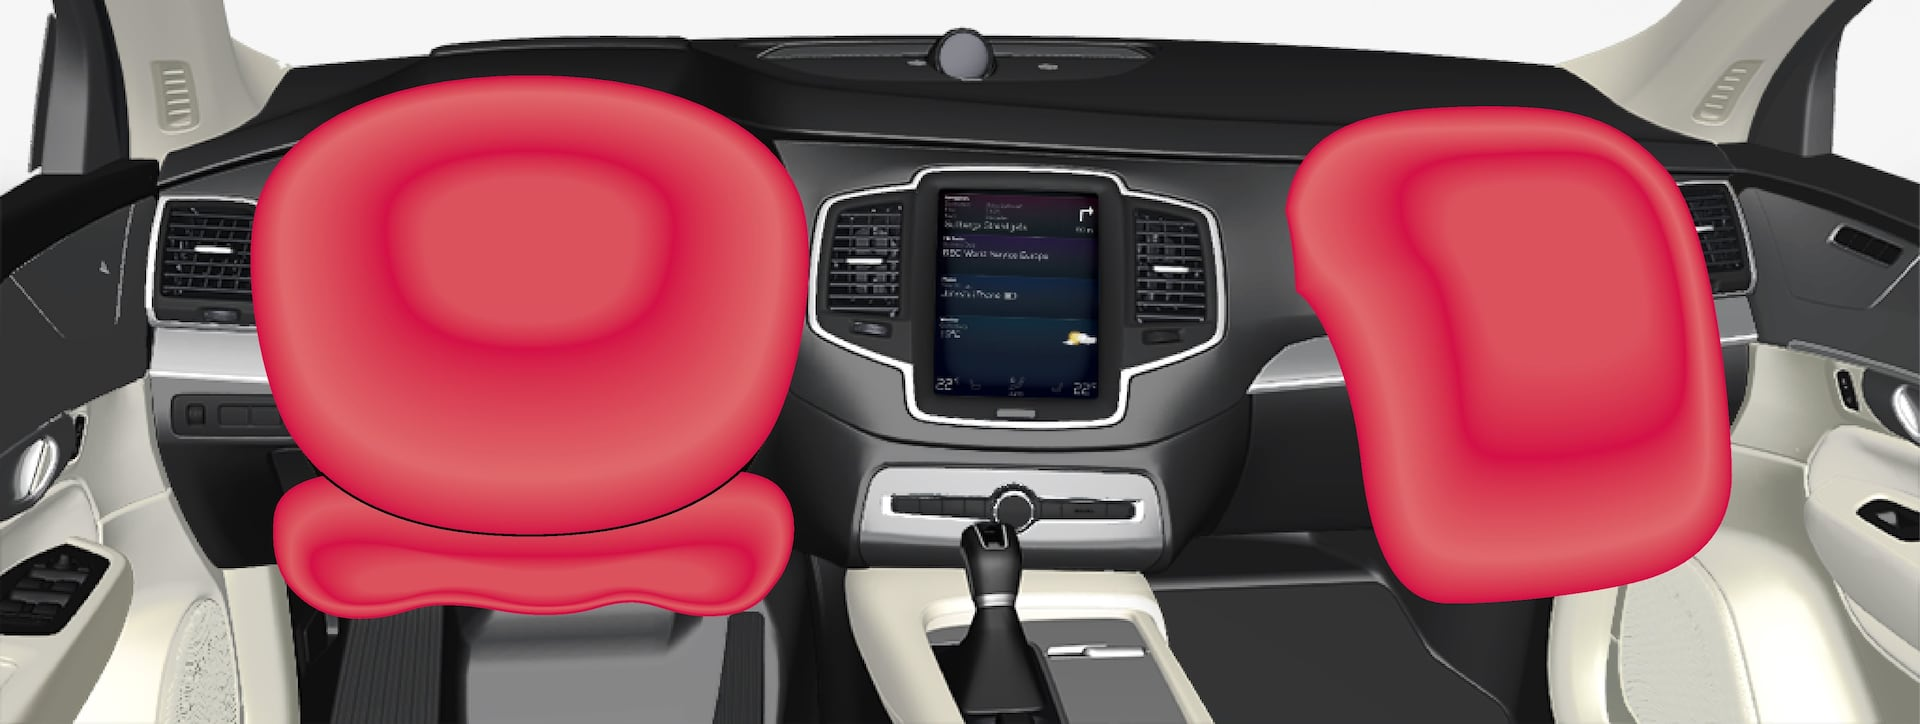 P5-1507–Safety–Driver and passenger airbags